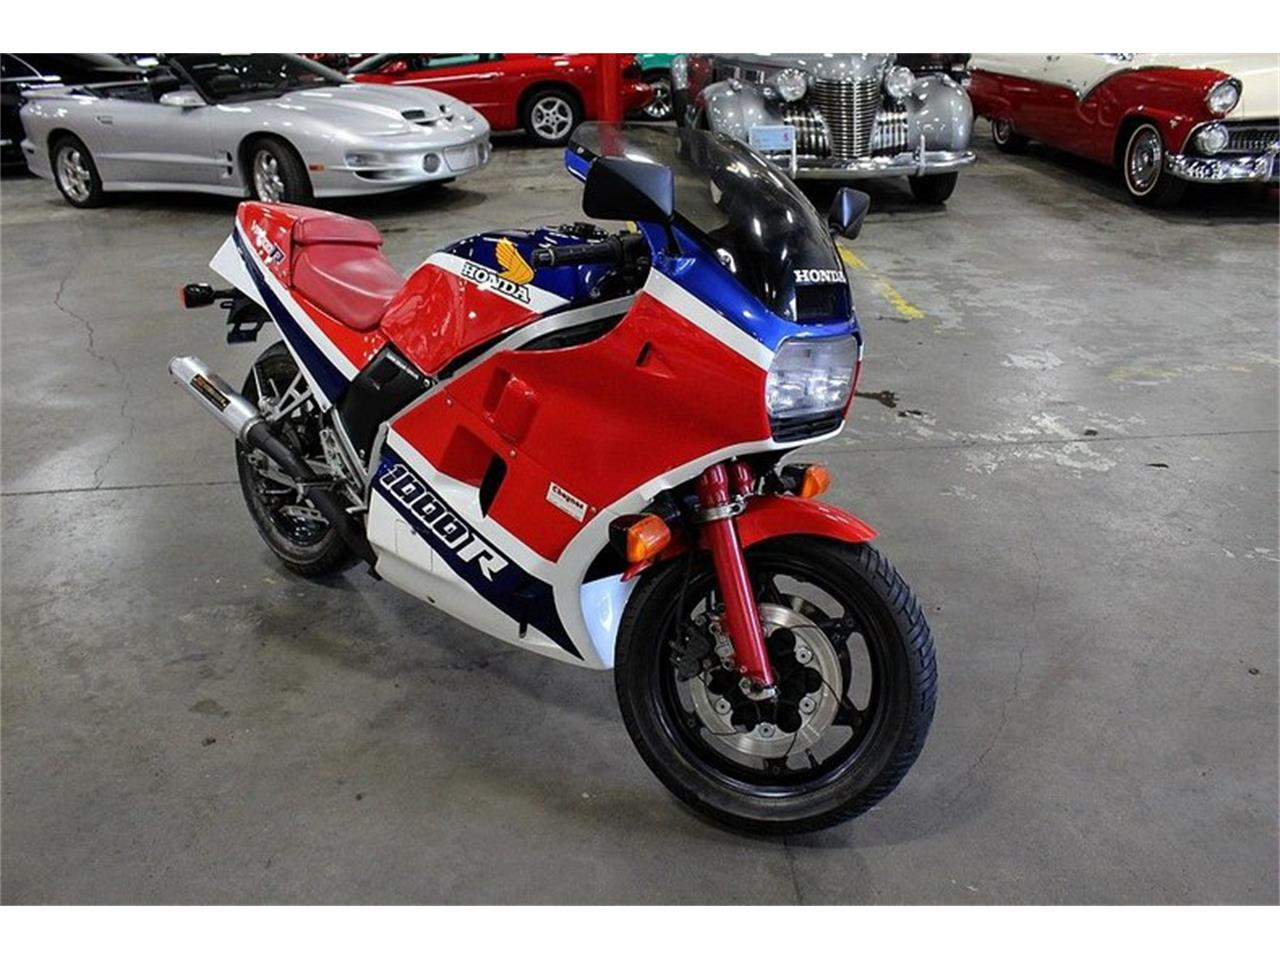 1984 Honda Motorcycle (CC-1252152) for sale in Kentwood, Michigan